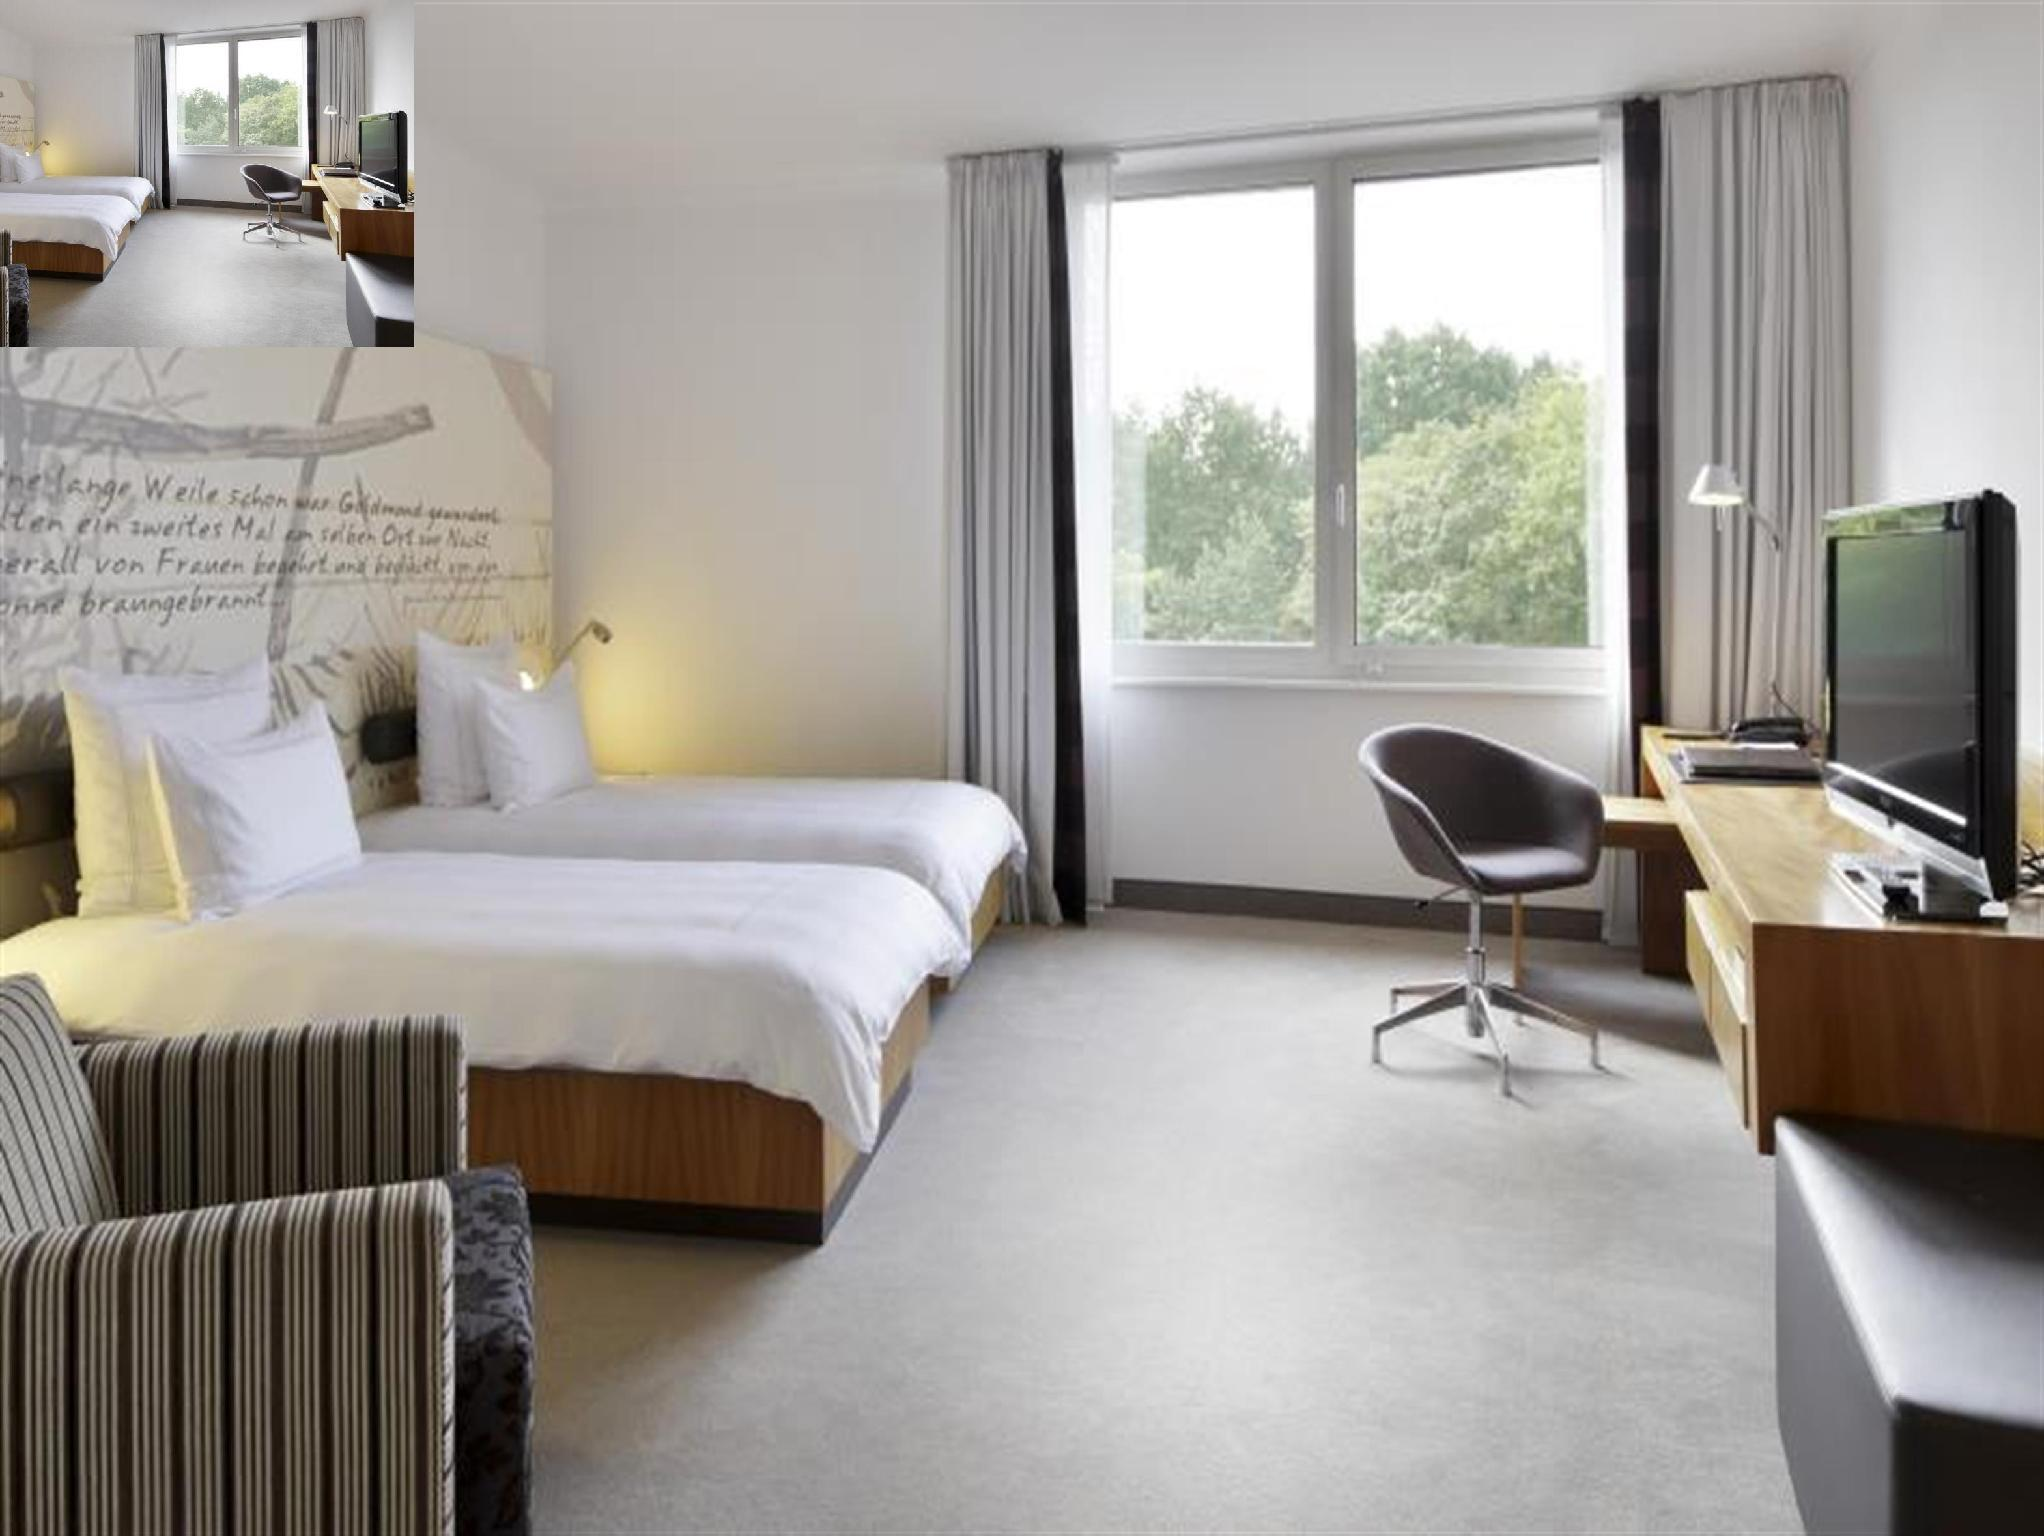 Swiss Advantage Zweibettzimmer (Swiss Advantage Twin Room)